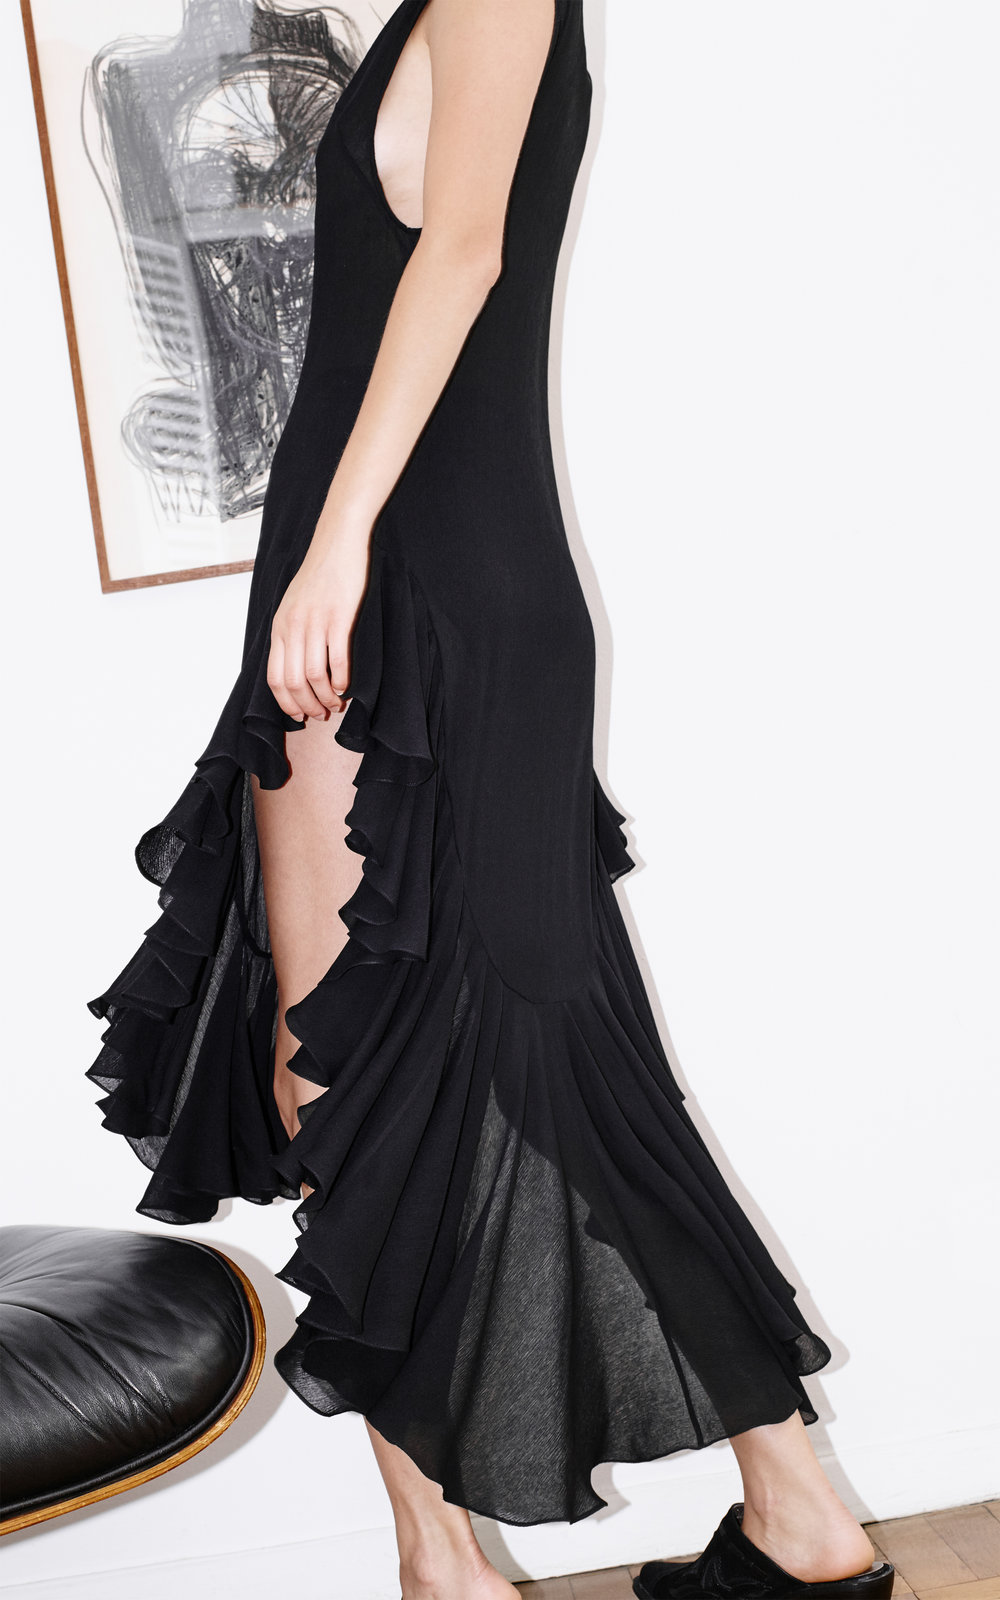 kelsey randall black silk chiffon ruffle flounce hem salsa dress sheet crinkle black silk organza long dress high-low hem